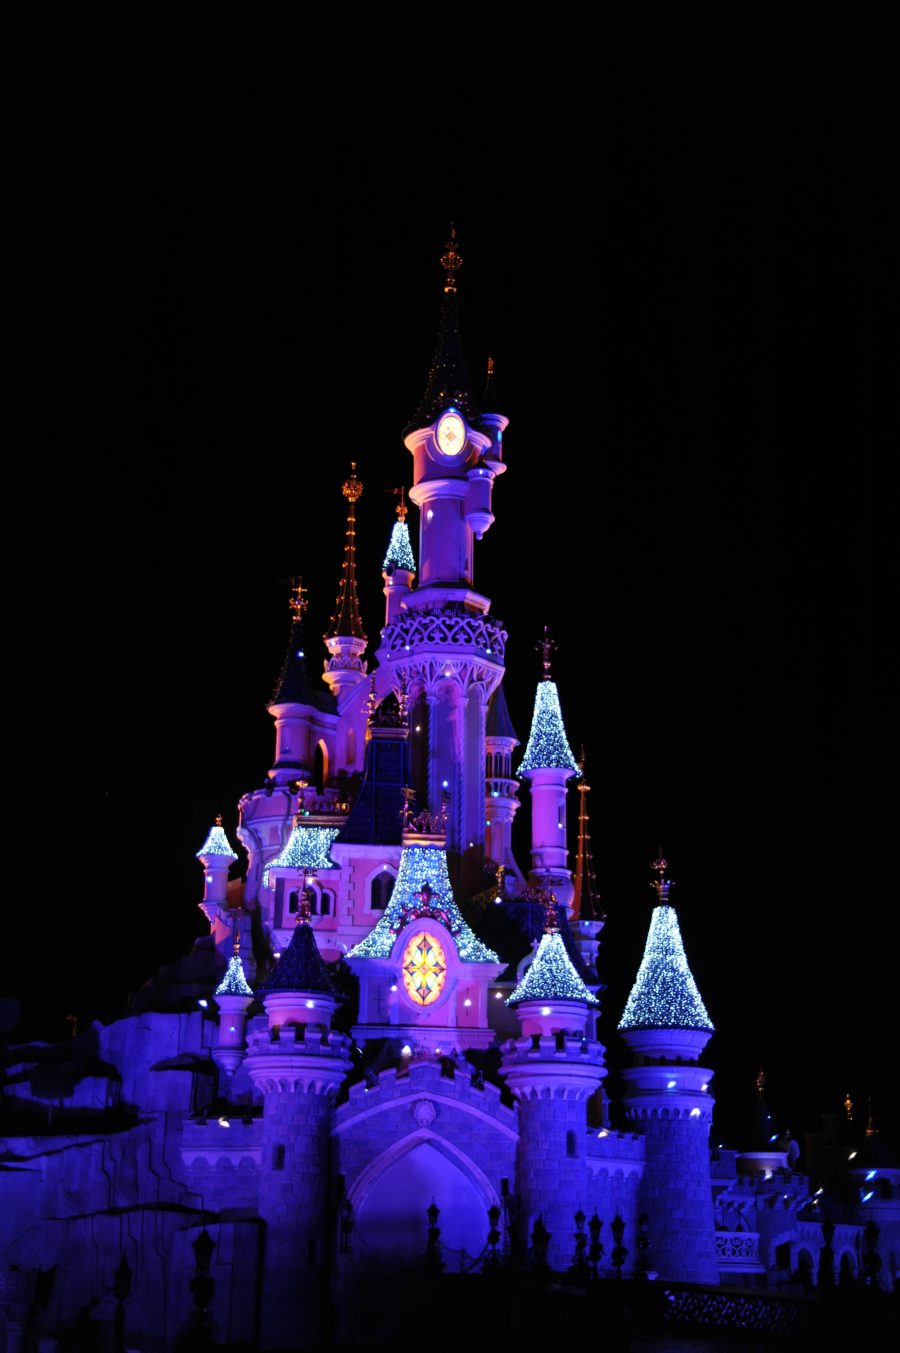 disneylandparis-8